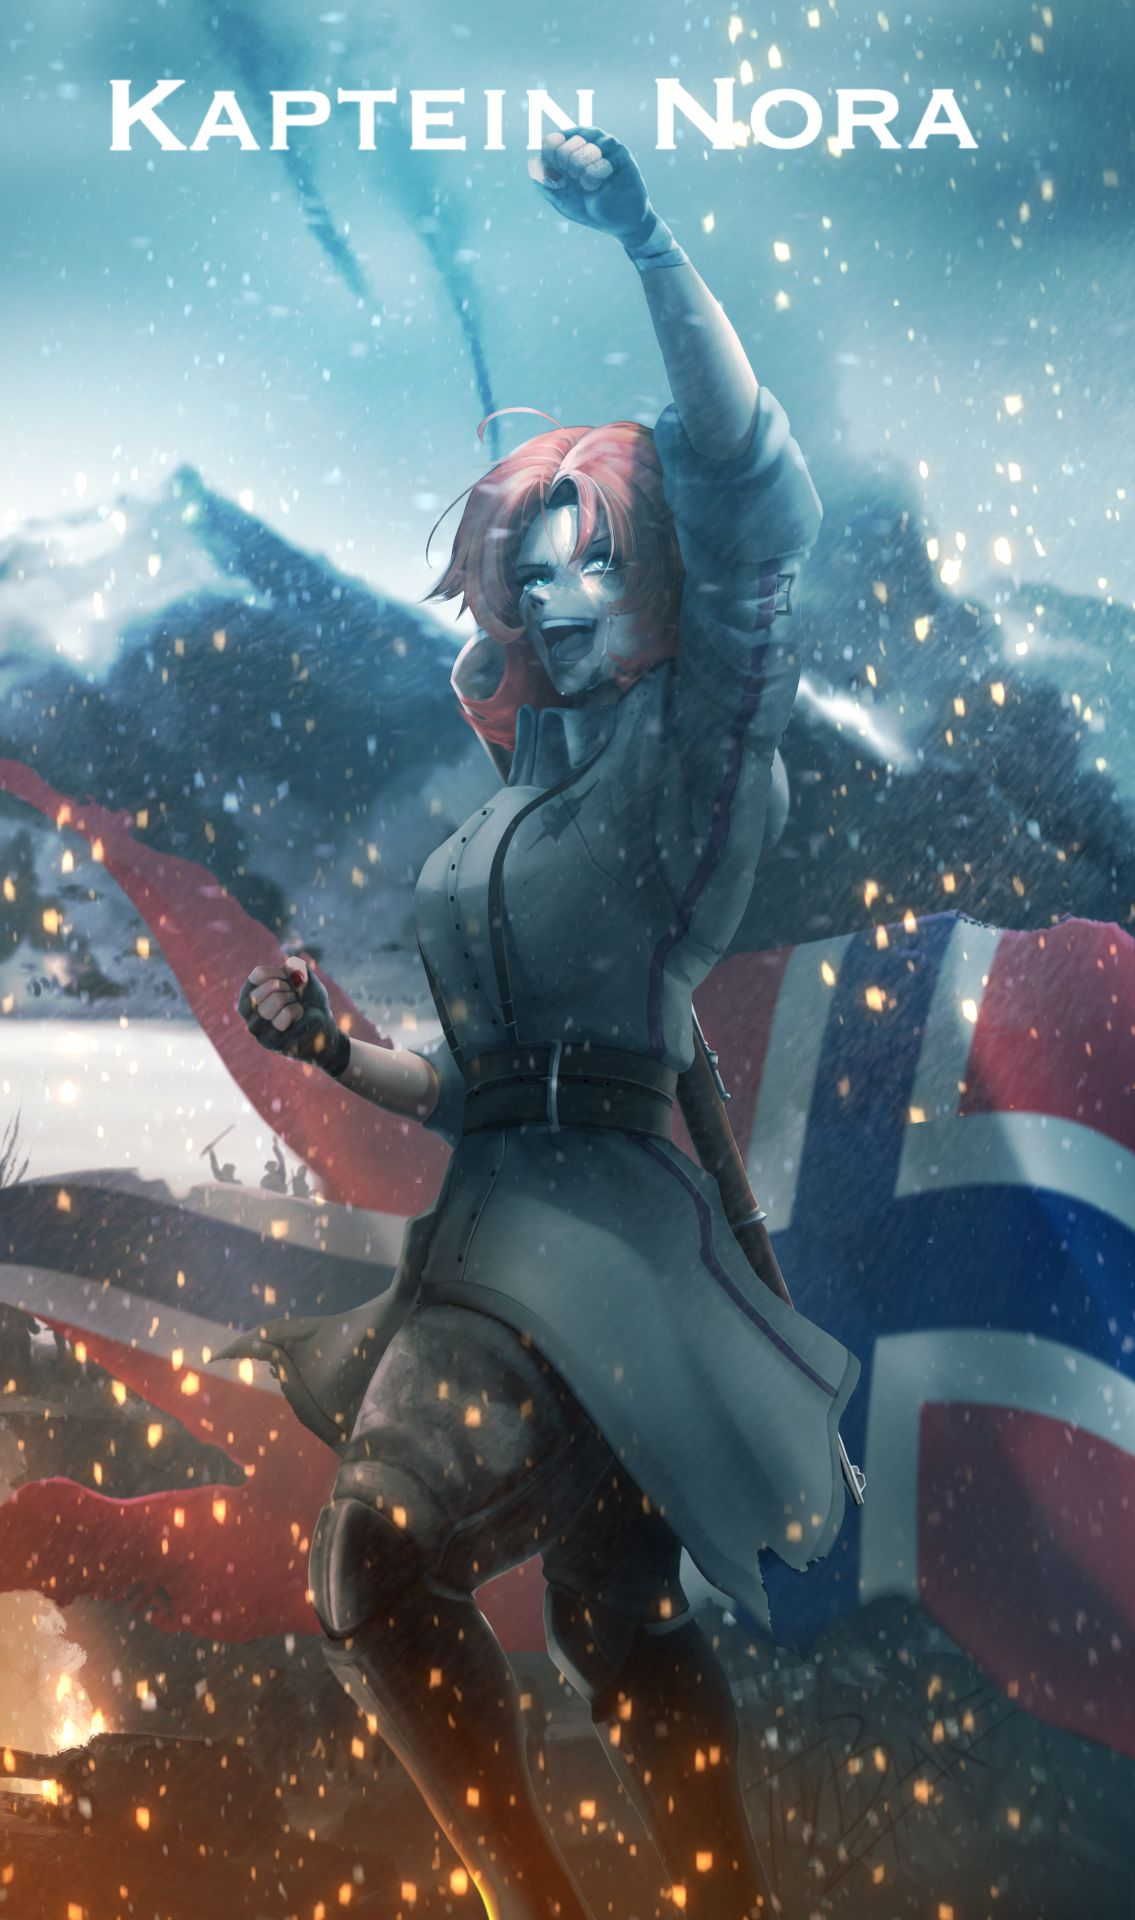 rwby__ww2_nations__norway___nora_by_thyblake_dckel3f.jpg